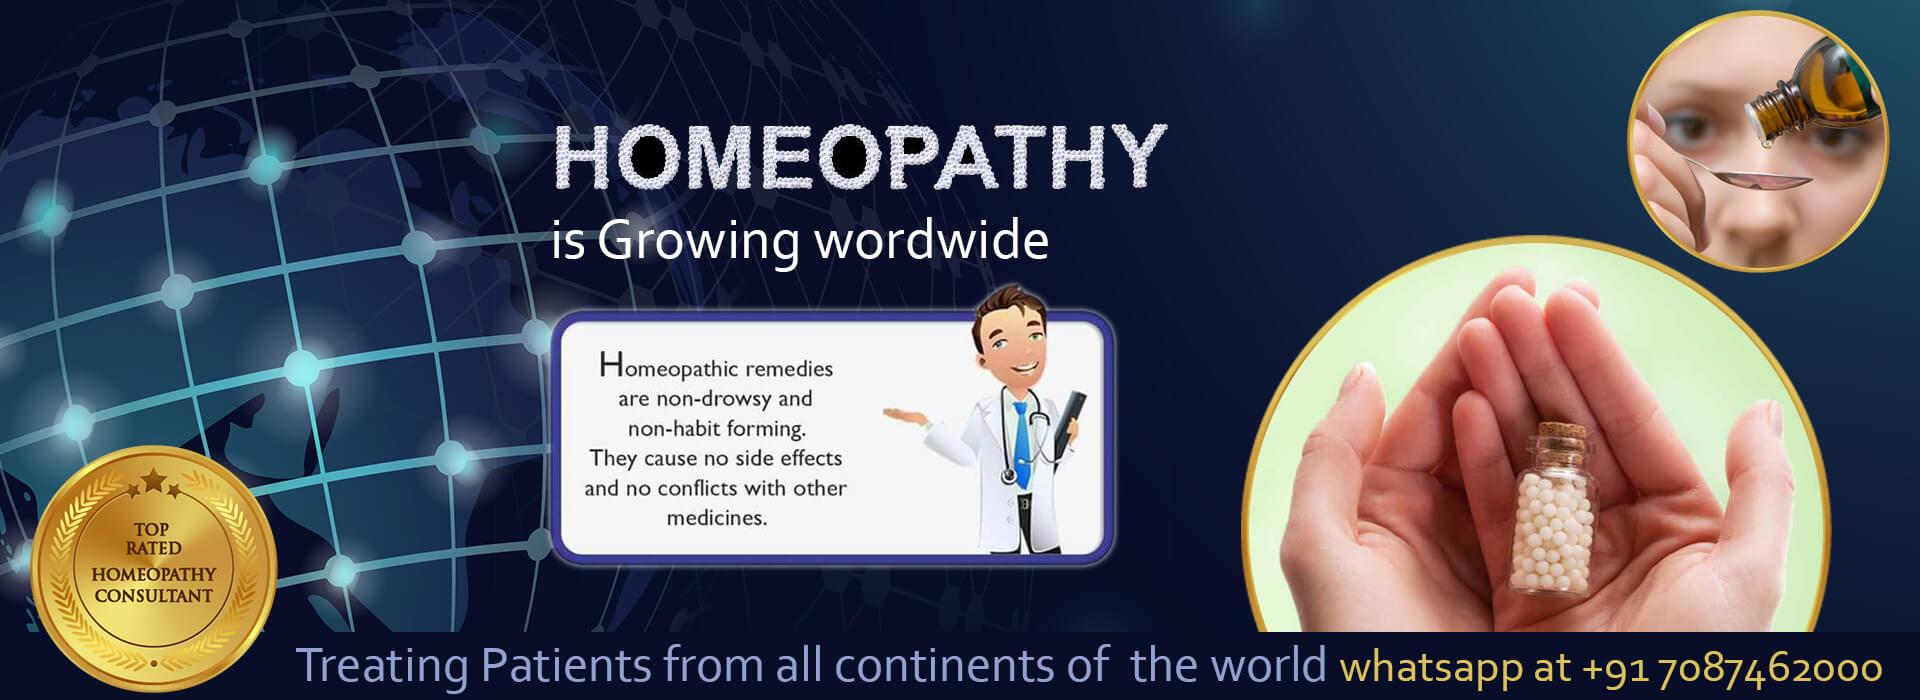 Best Homeopathic Doctor & Treatment in Chandigarh | Dr